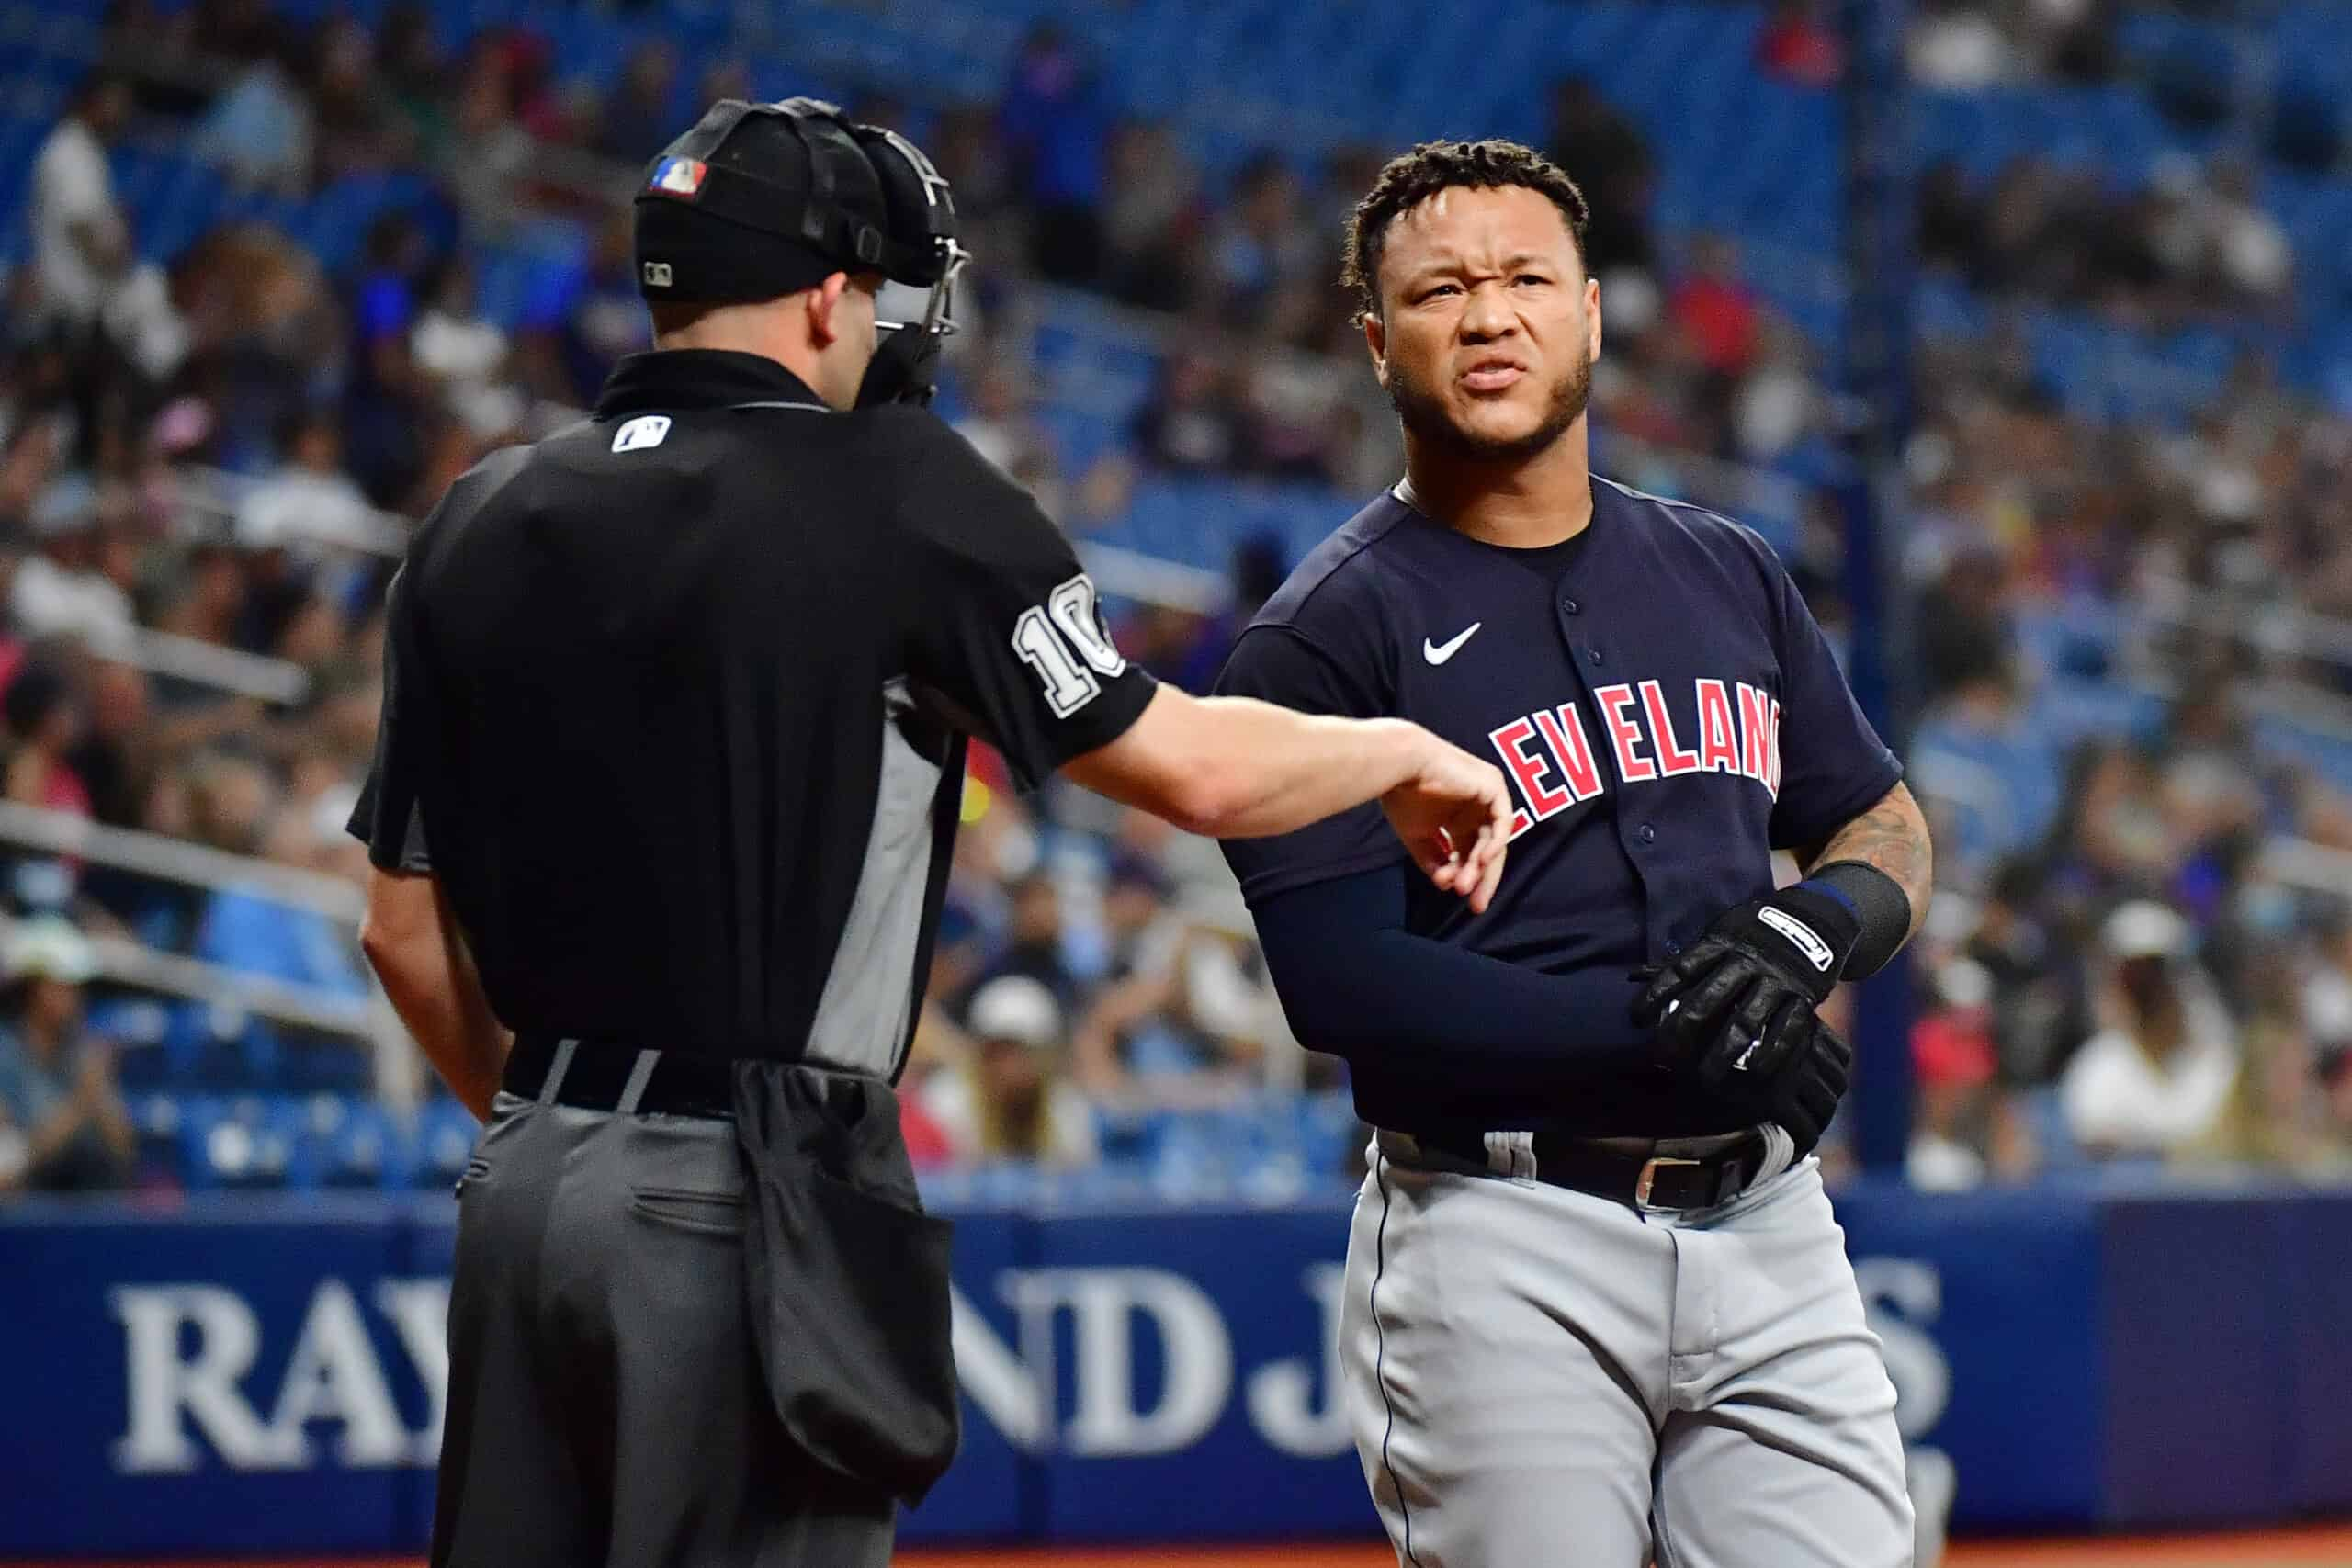 Harold Ramirez #40 of the Cleveland Indians after striking out as umpire Dan Merzelin looks on in the second inning against the Tampa Bay Rays at Tropicana Field on July 05, 2021 in St Petersburg, Florida.